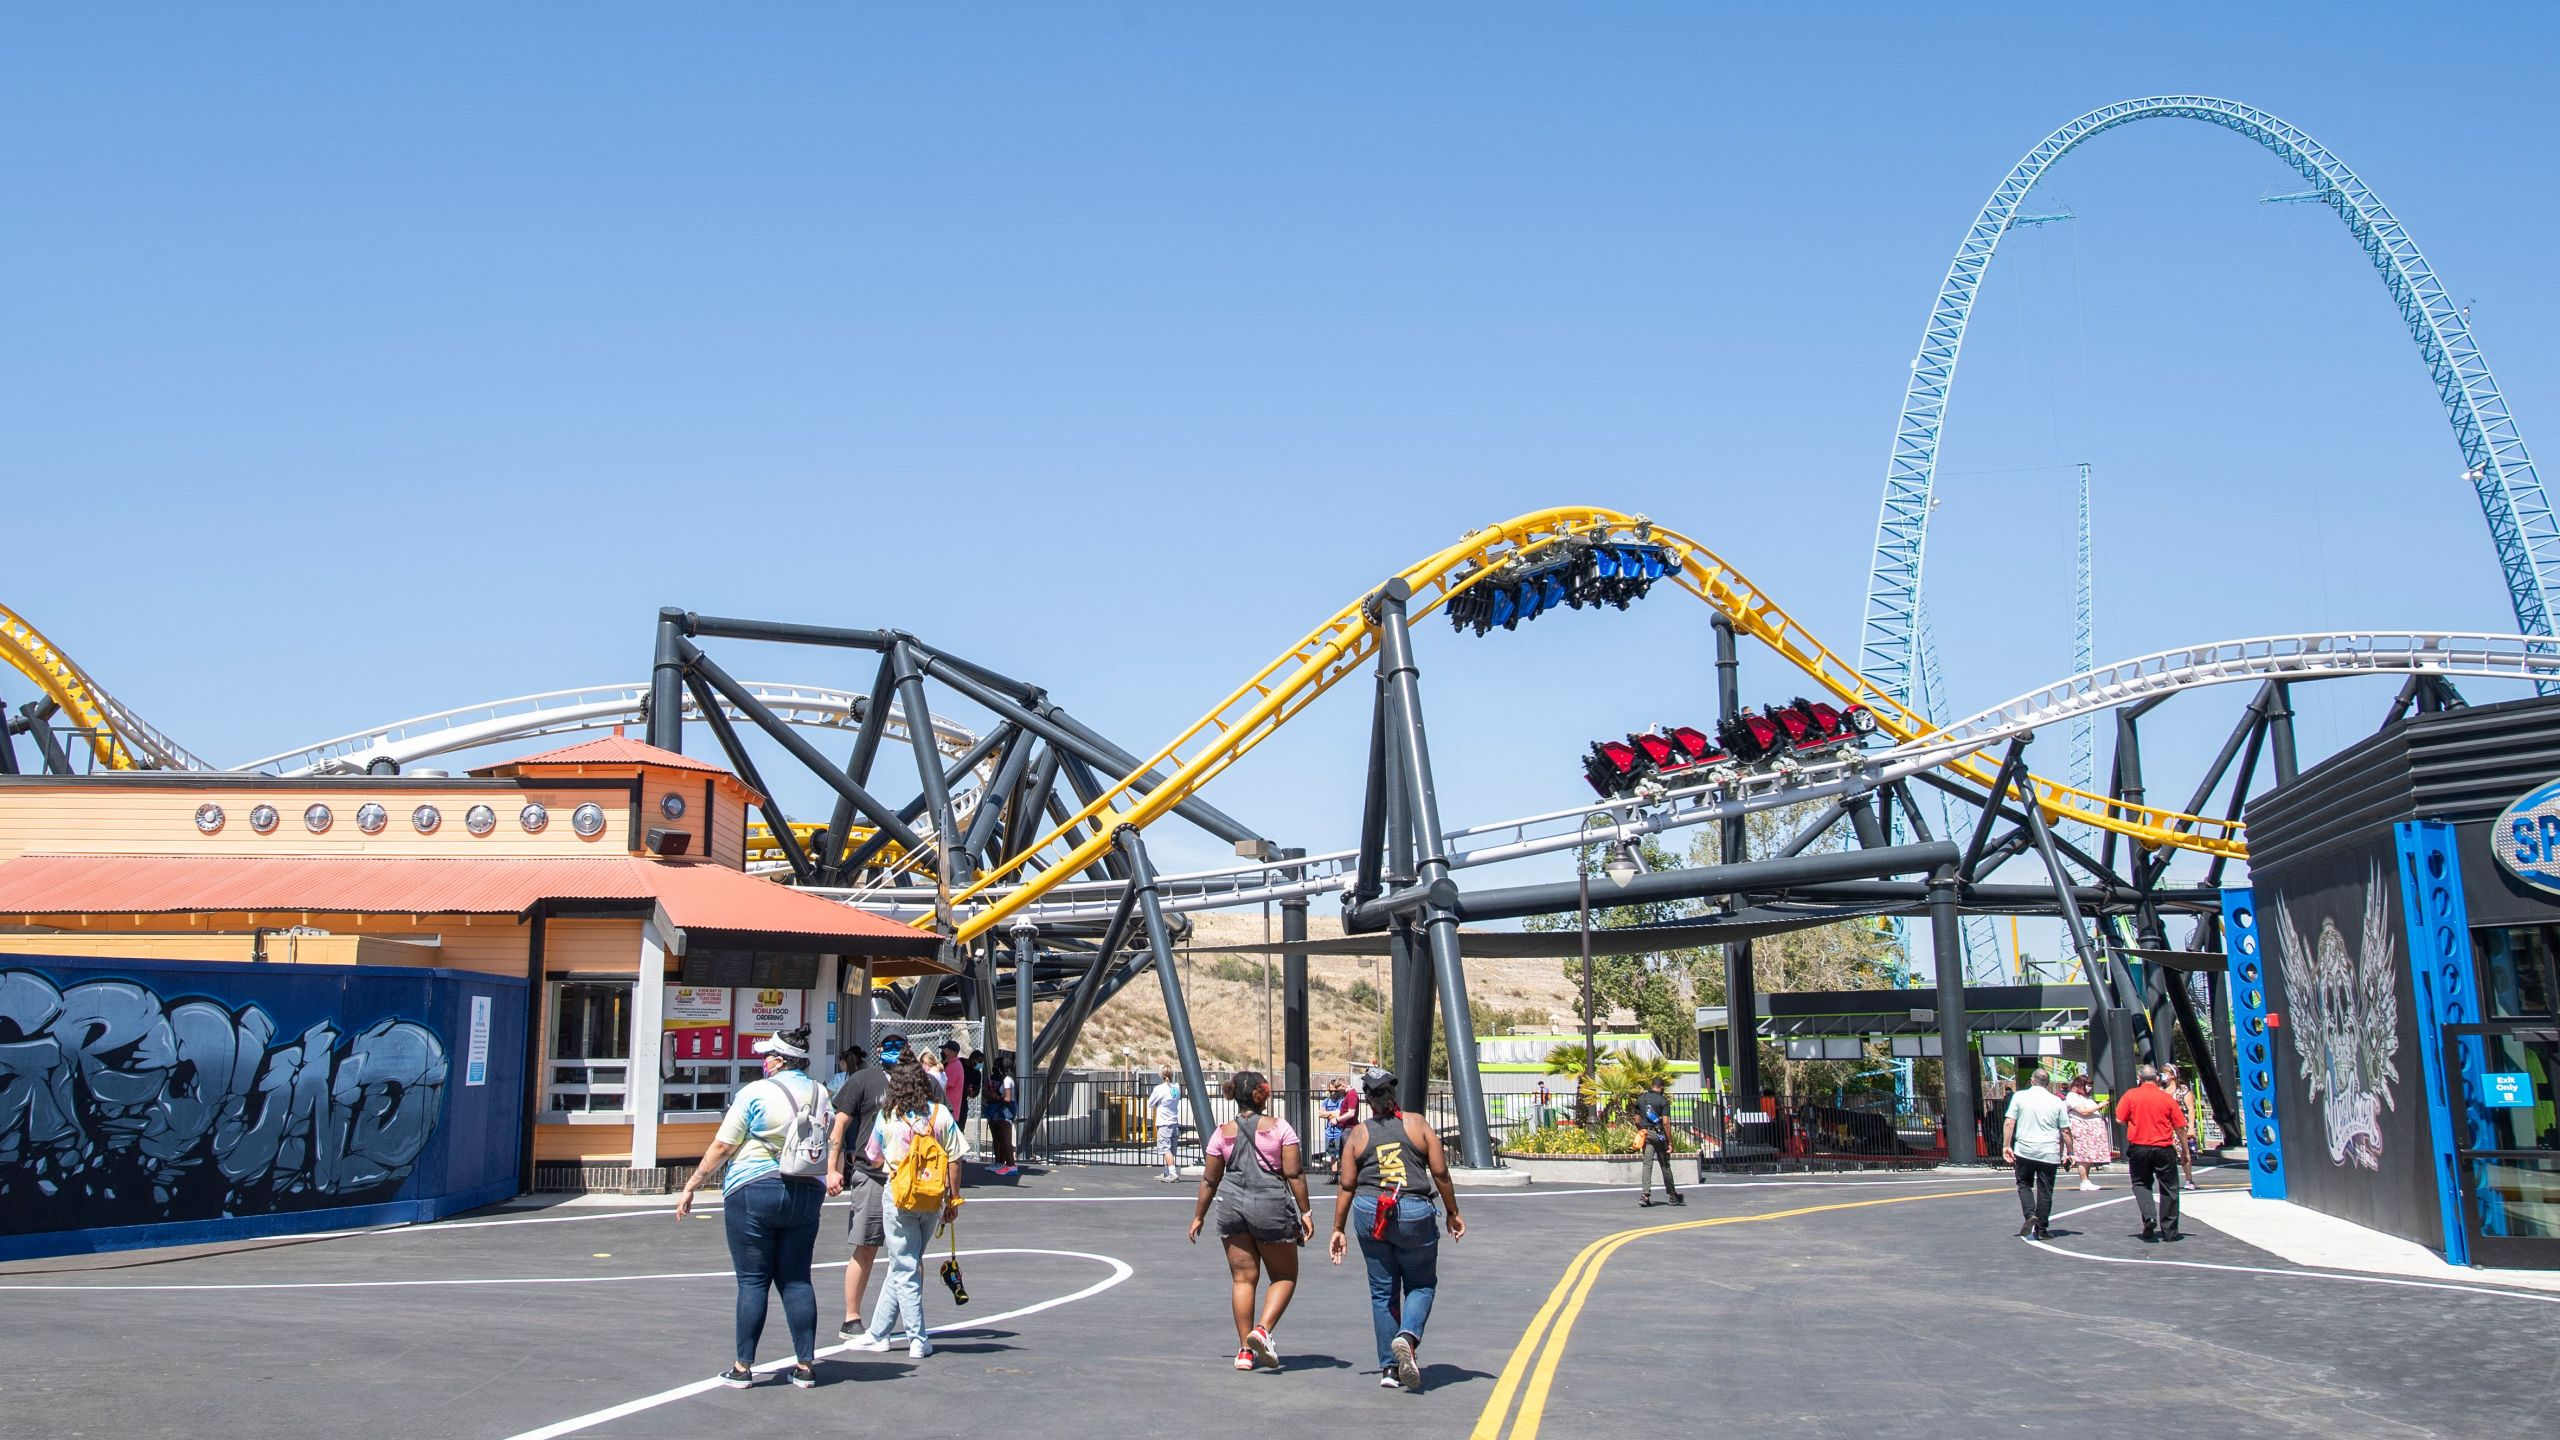 Visitors walk past the West Coast Racers roller coaster at Six Flags Magic Mountain on April 1, 2021. (VALERIE MACON/AFP via Getty Images)